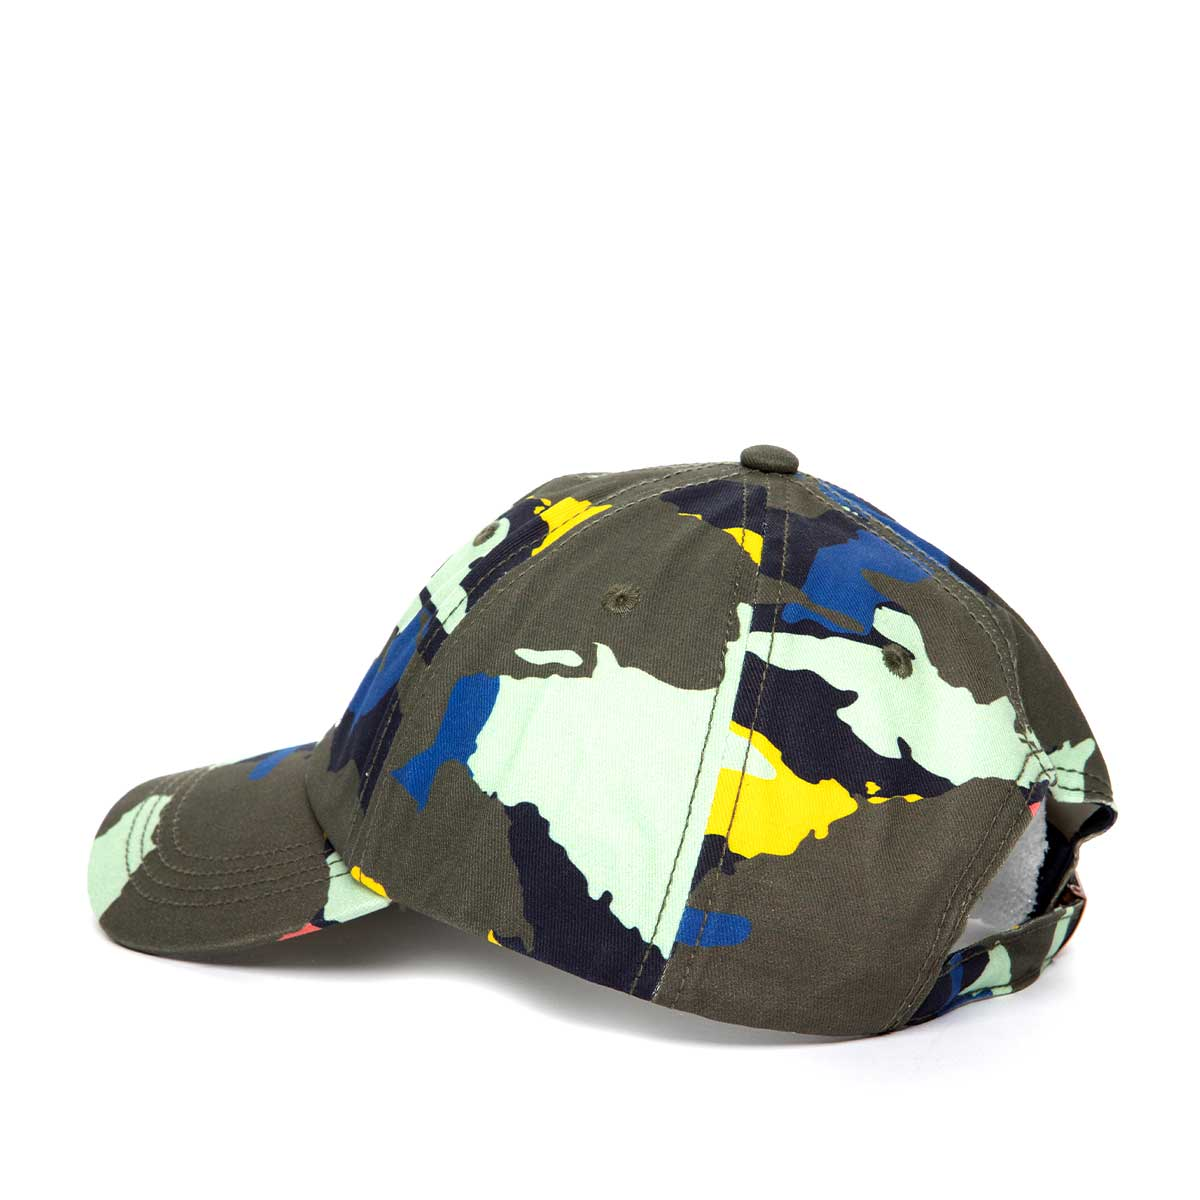 Billionaire Boys Club Hemlock Camo Adjustable Back